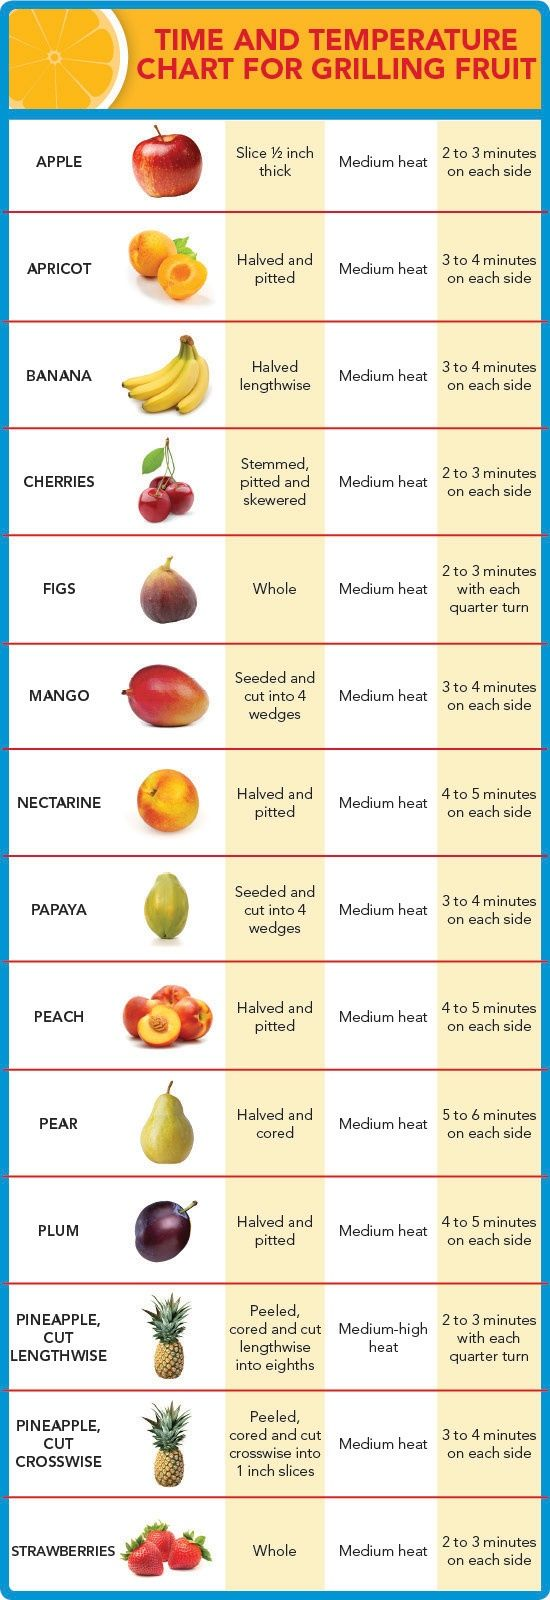 Time and Temperature Chart for Grilling Fruit